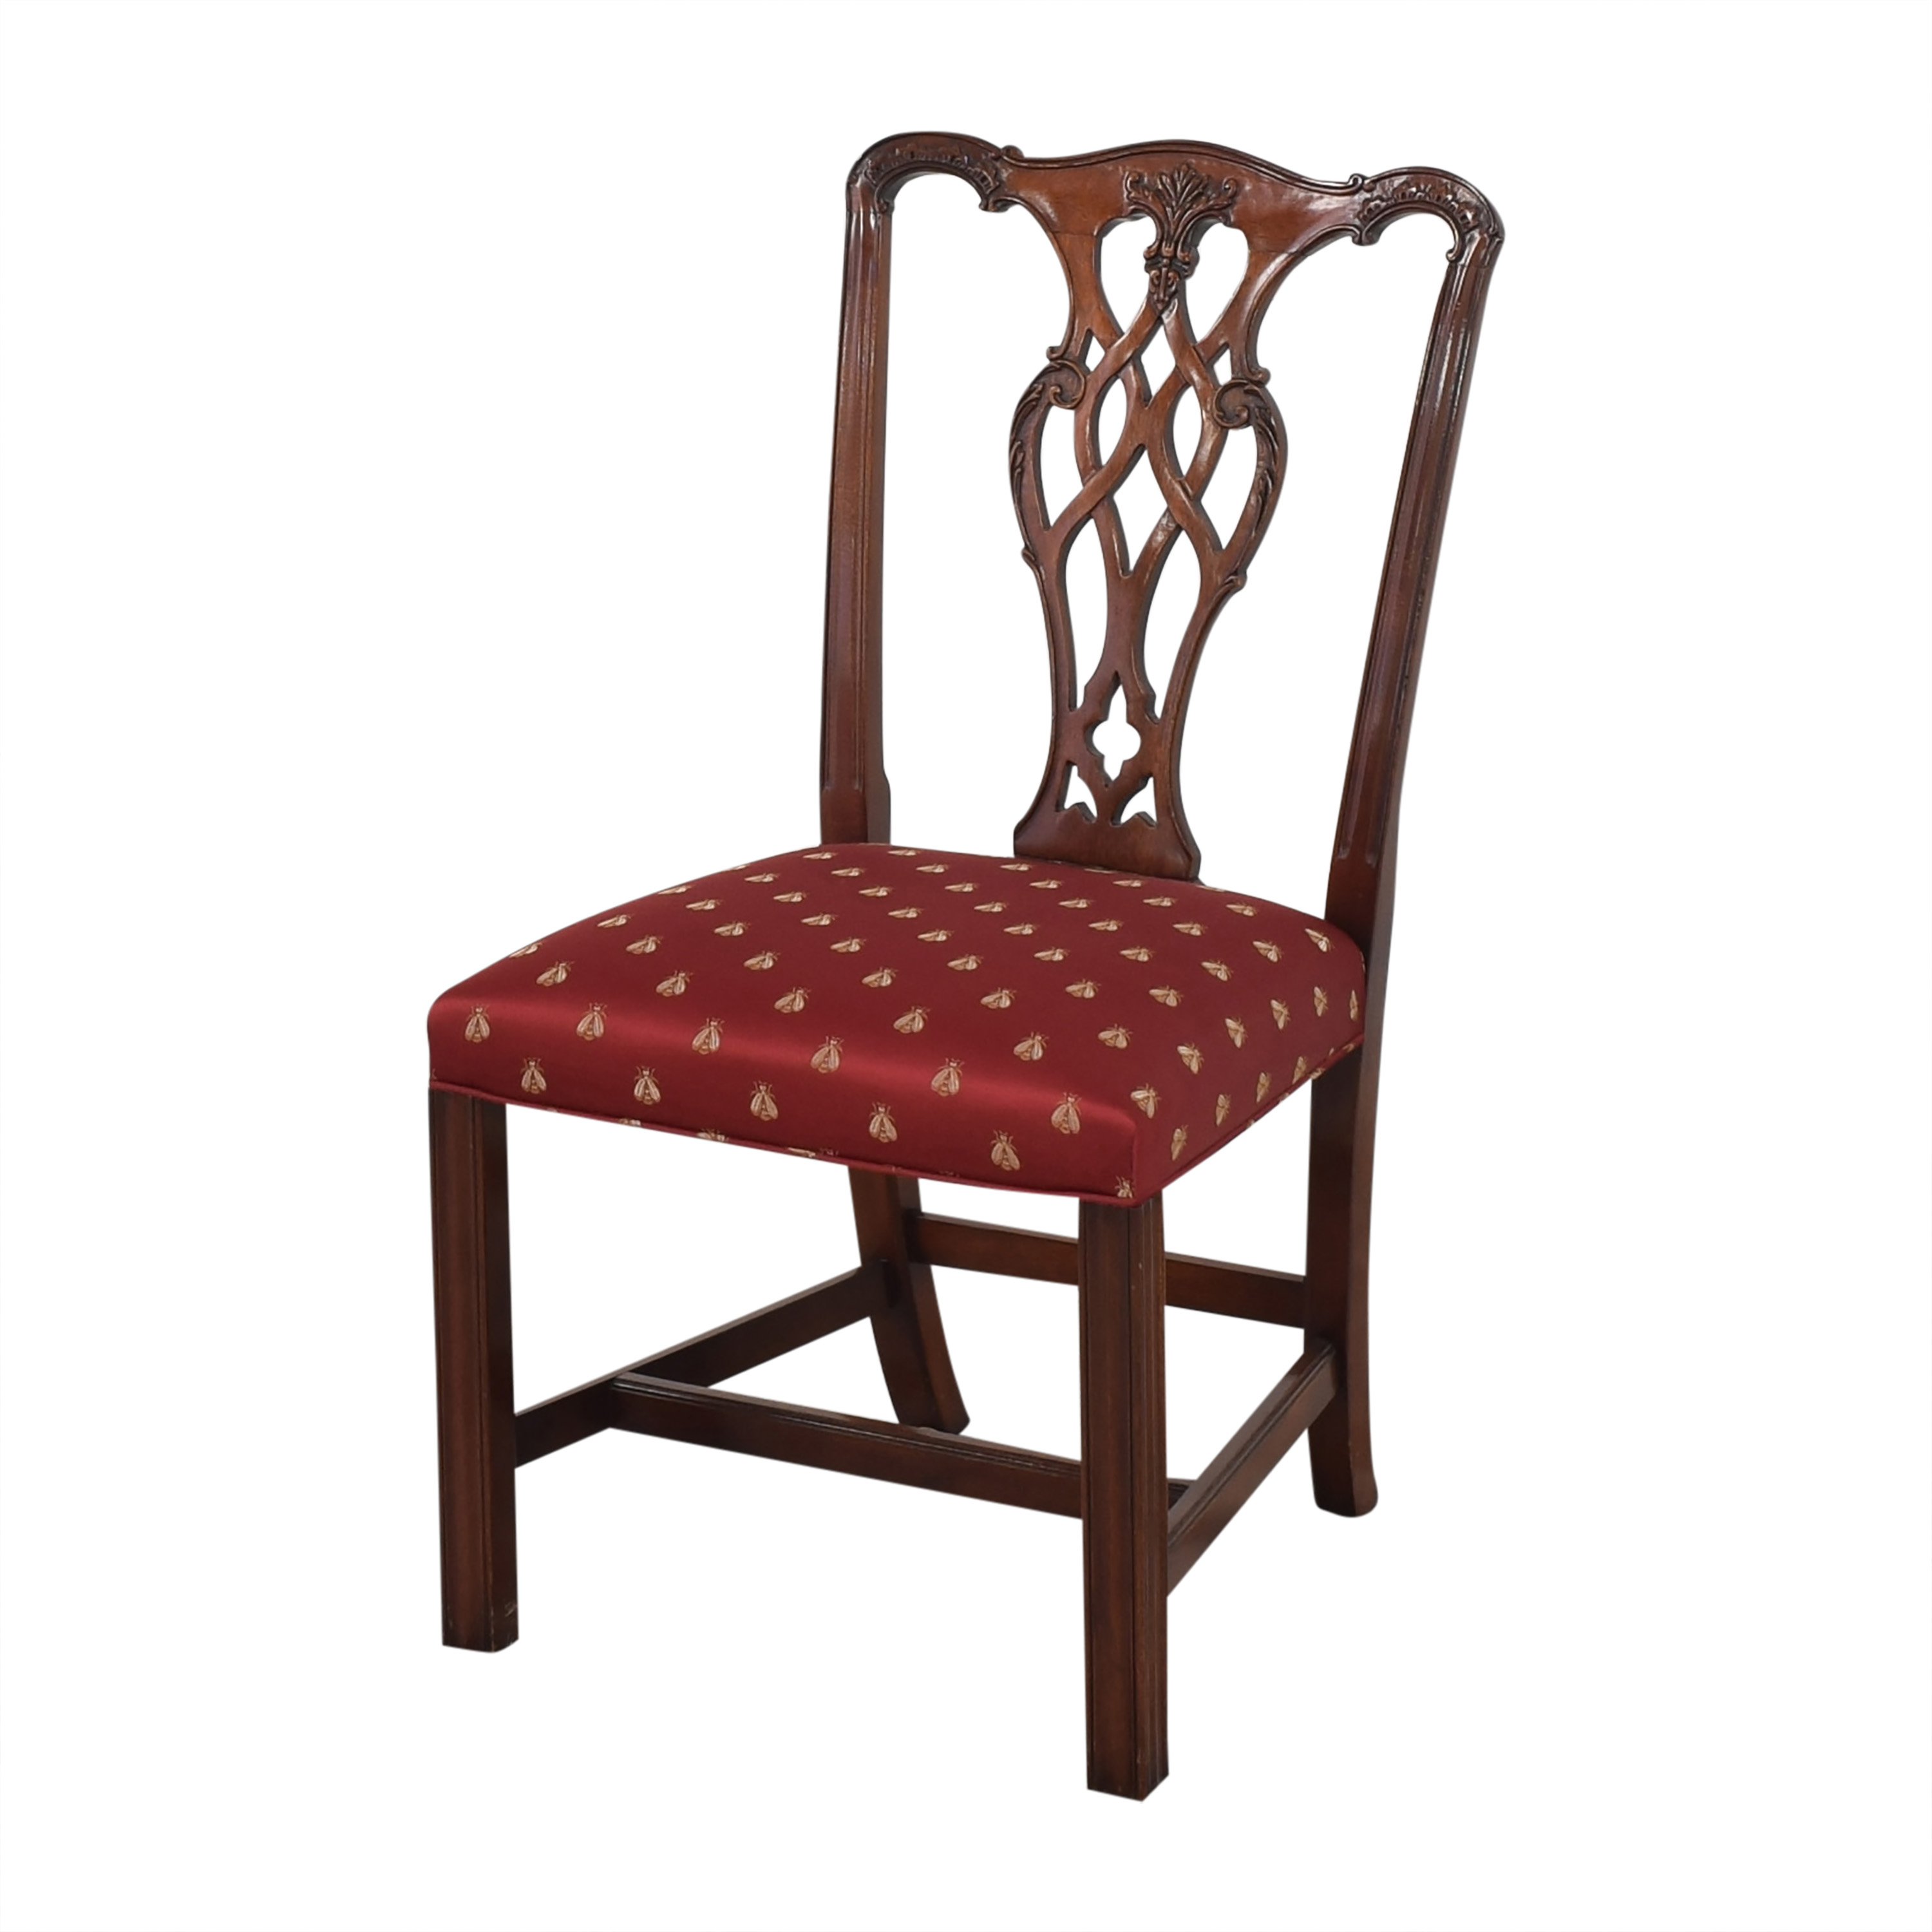 Councill Councill Chippendale Style Dining Chairs for sale